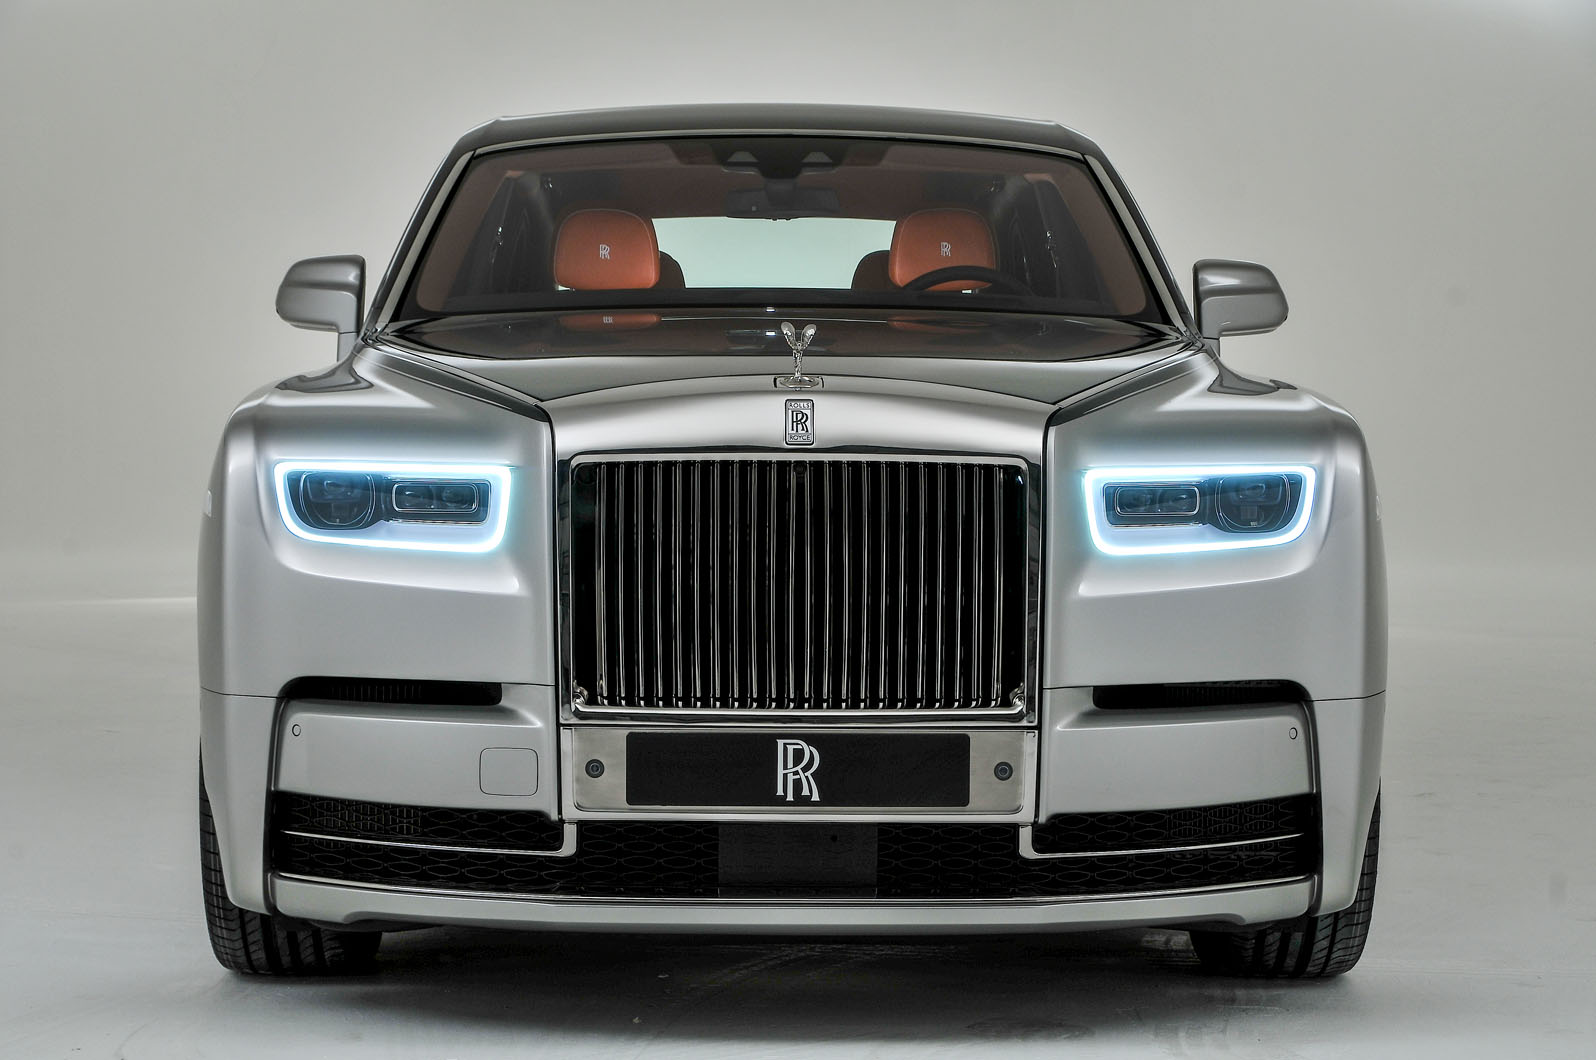 2018 rolls royce phantom viii revealed as flagship model autocar. Black Bedroom Furniture Sets. Home Design Ideas